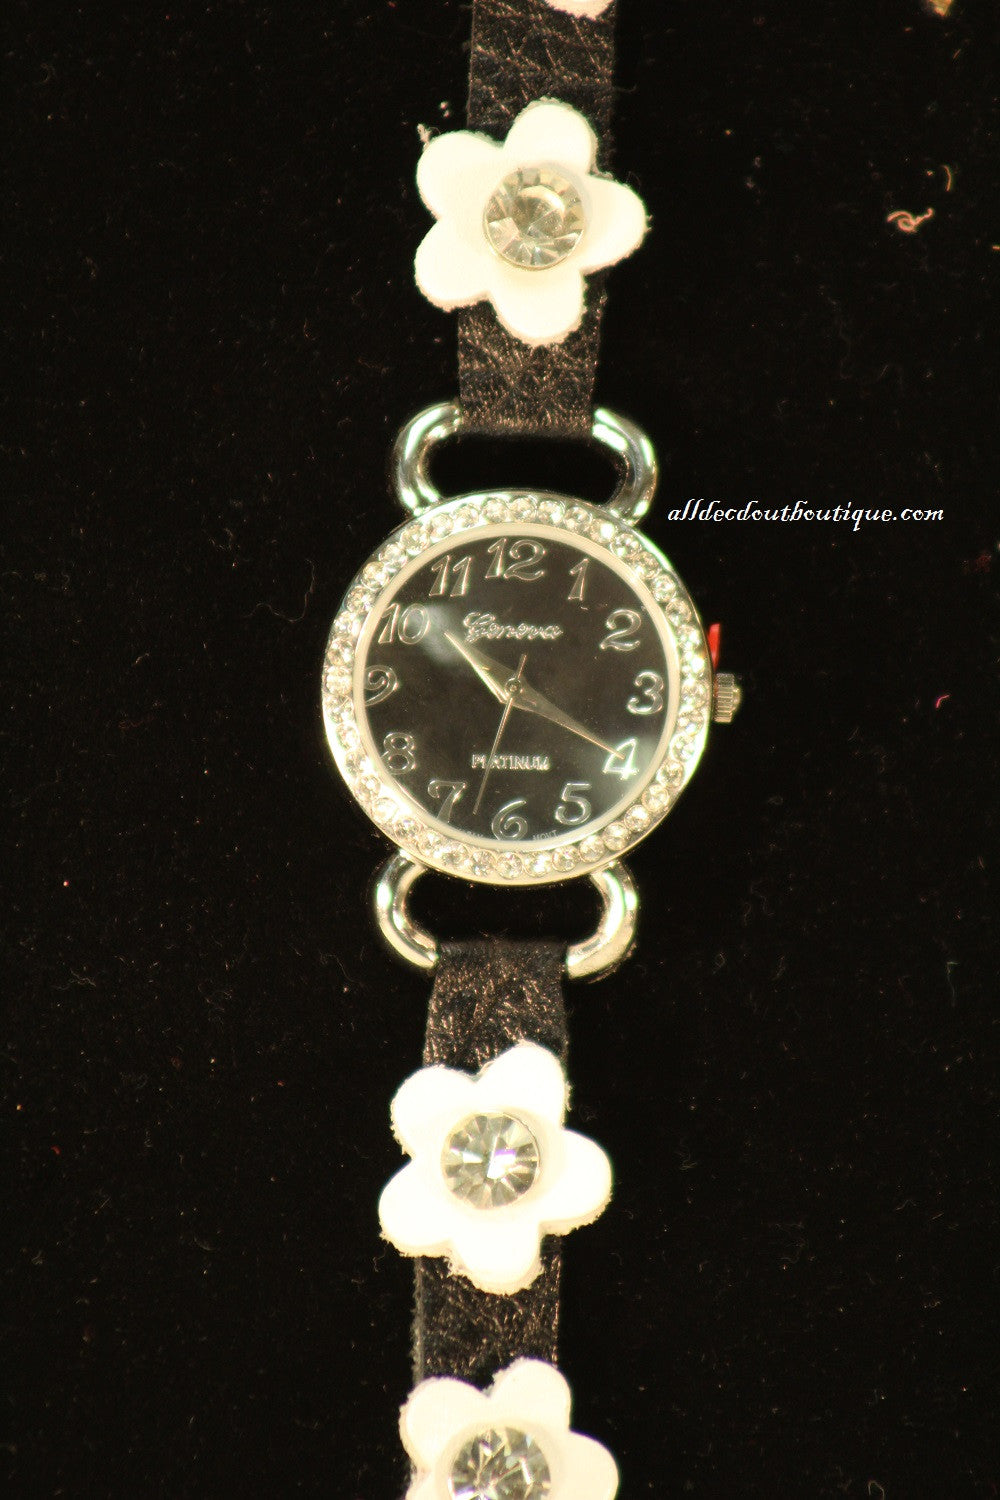 Black/Black, White Flowers | Leather Band w/ Buckle Clasp